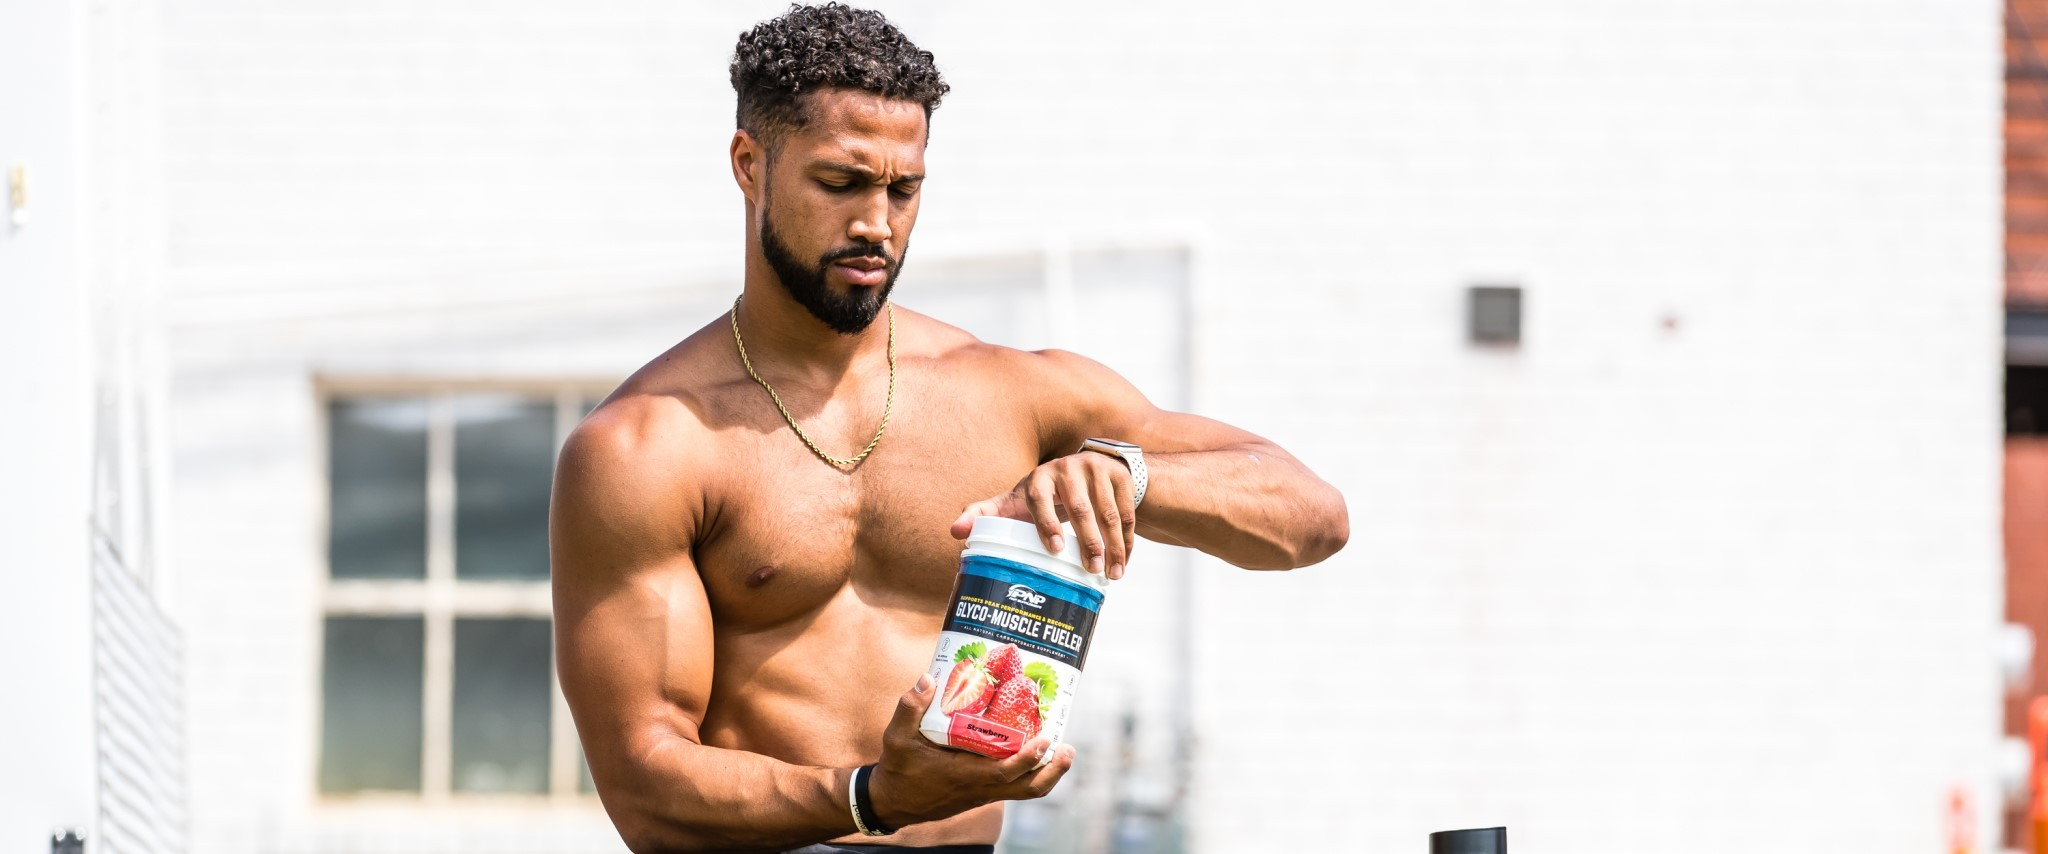 How to use Glyco-Muscle Fueler for sports performance.